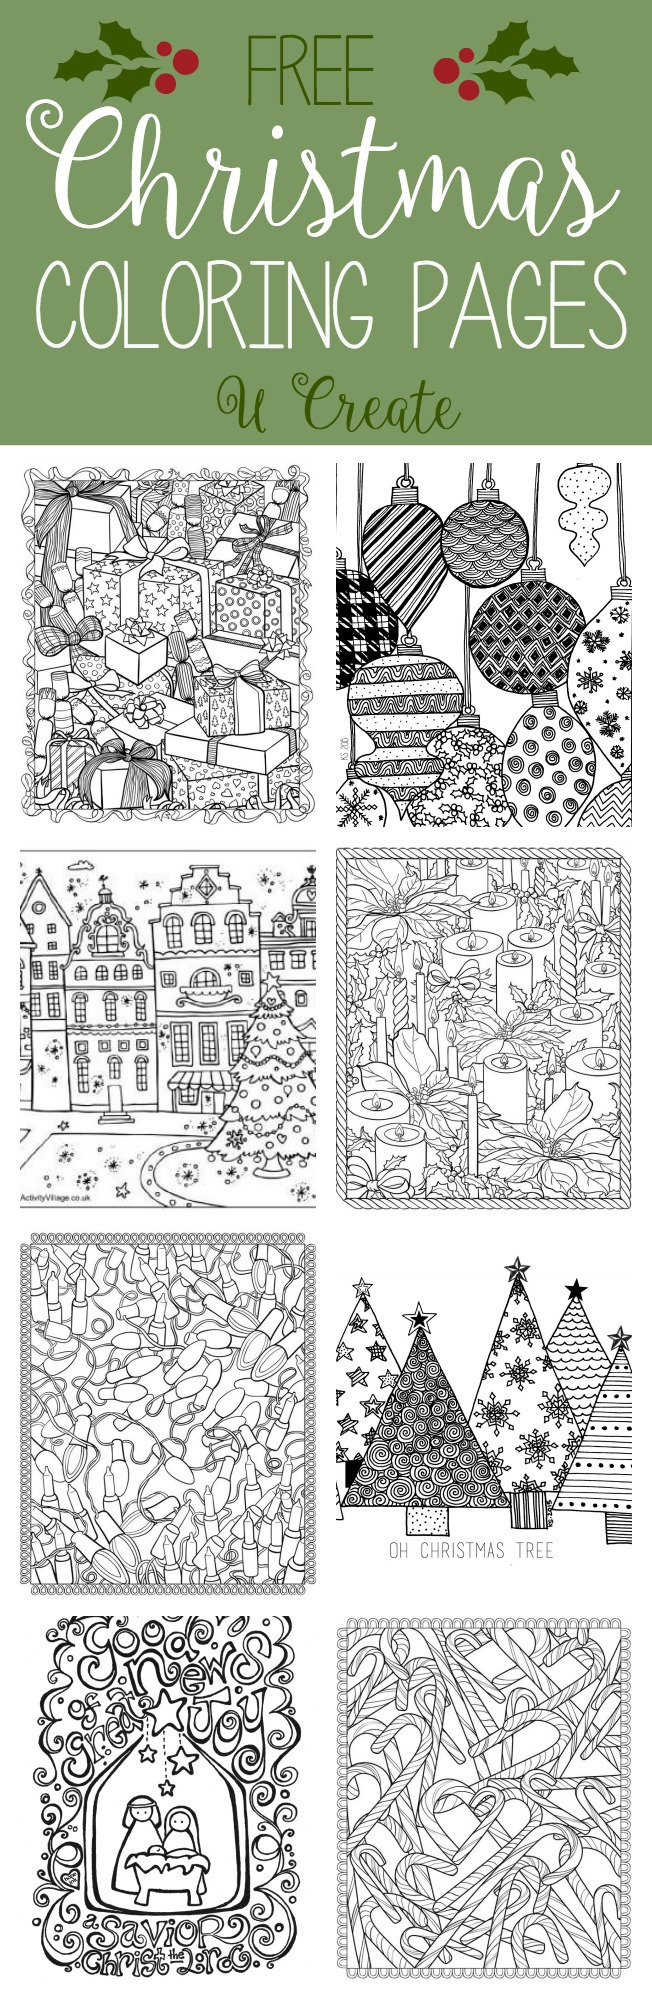 picture regarding Free Printable Adult Christmas Coloring Pages titled Free of charge Xmas Grownup Coloring Web pages - U Generate